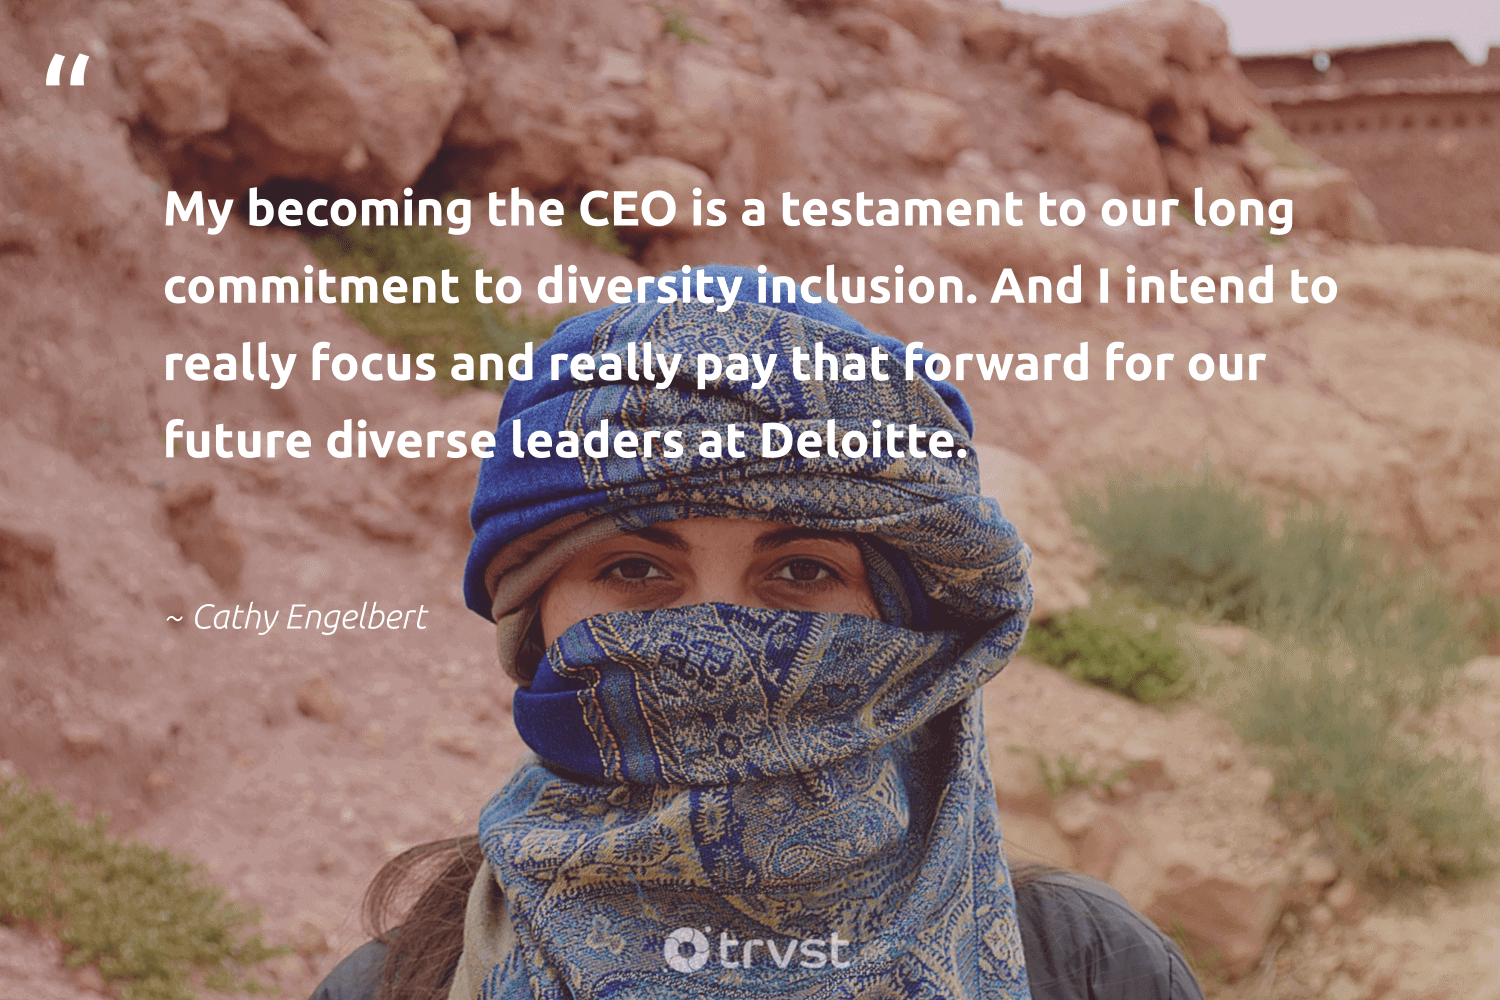 """""""My becoming the CEO is a testament to our long commitment to diversity inclusion. And I intend to really focus and really pay that forward for our future diverse leaders at Deloitte.""""  - Cathy Engelbert #trvst #quotes #diversity #inclusion #focus #discrimination #representationmatters #giveback #weareallone #dotherightthing #bethechange #socialchange"""